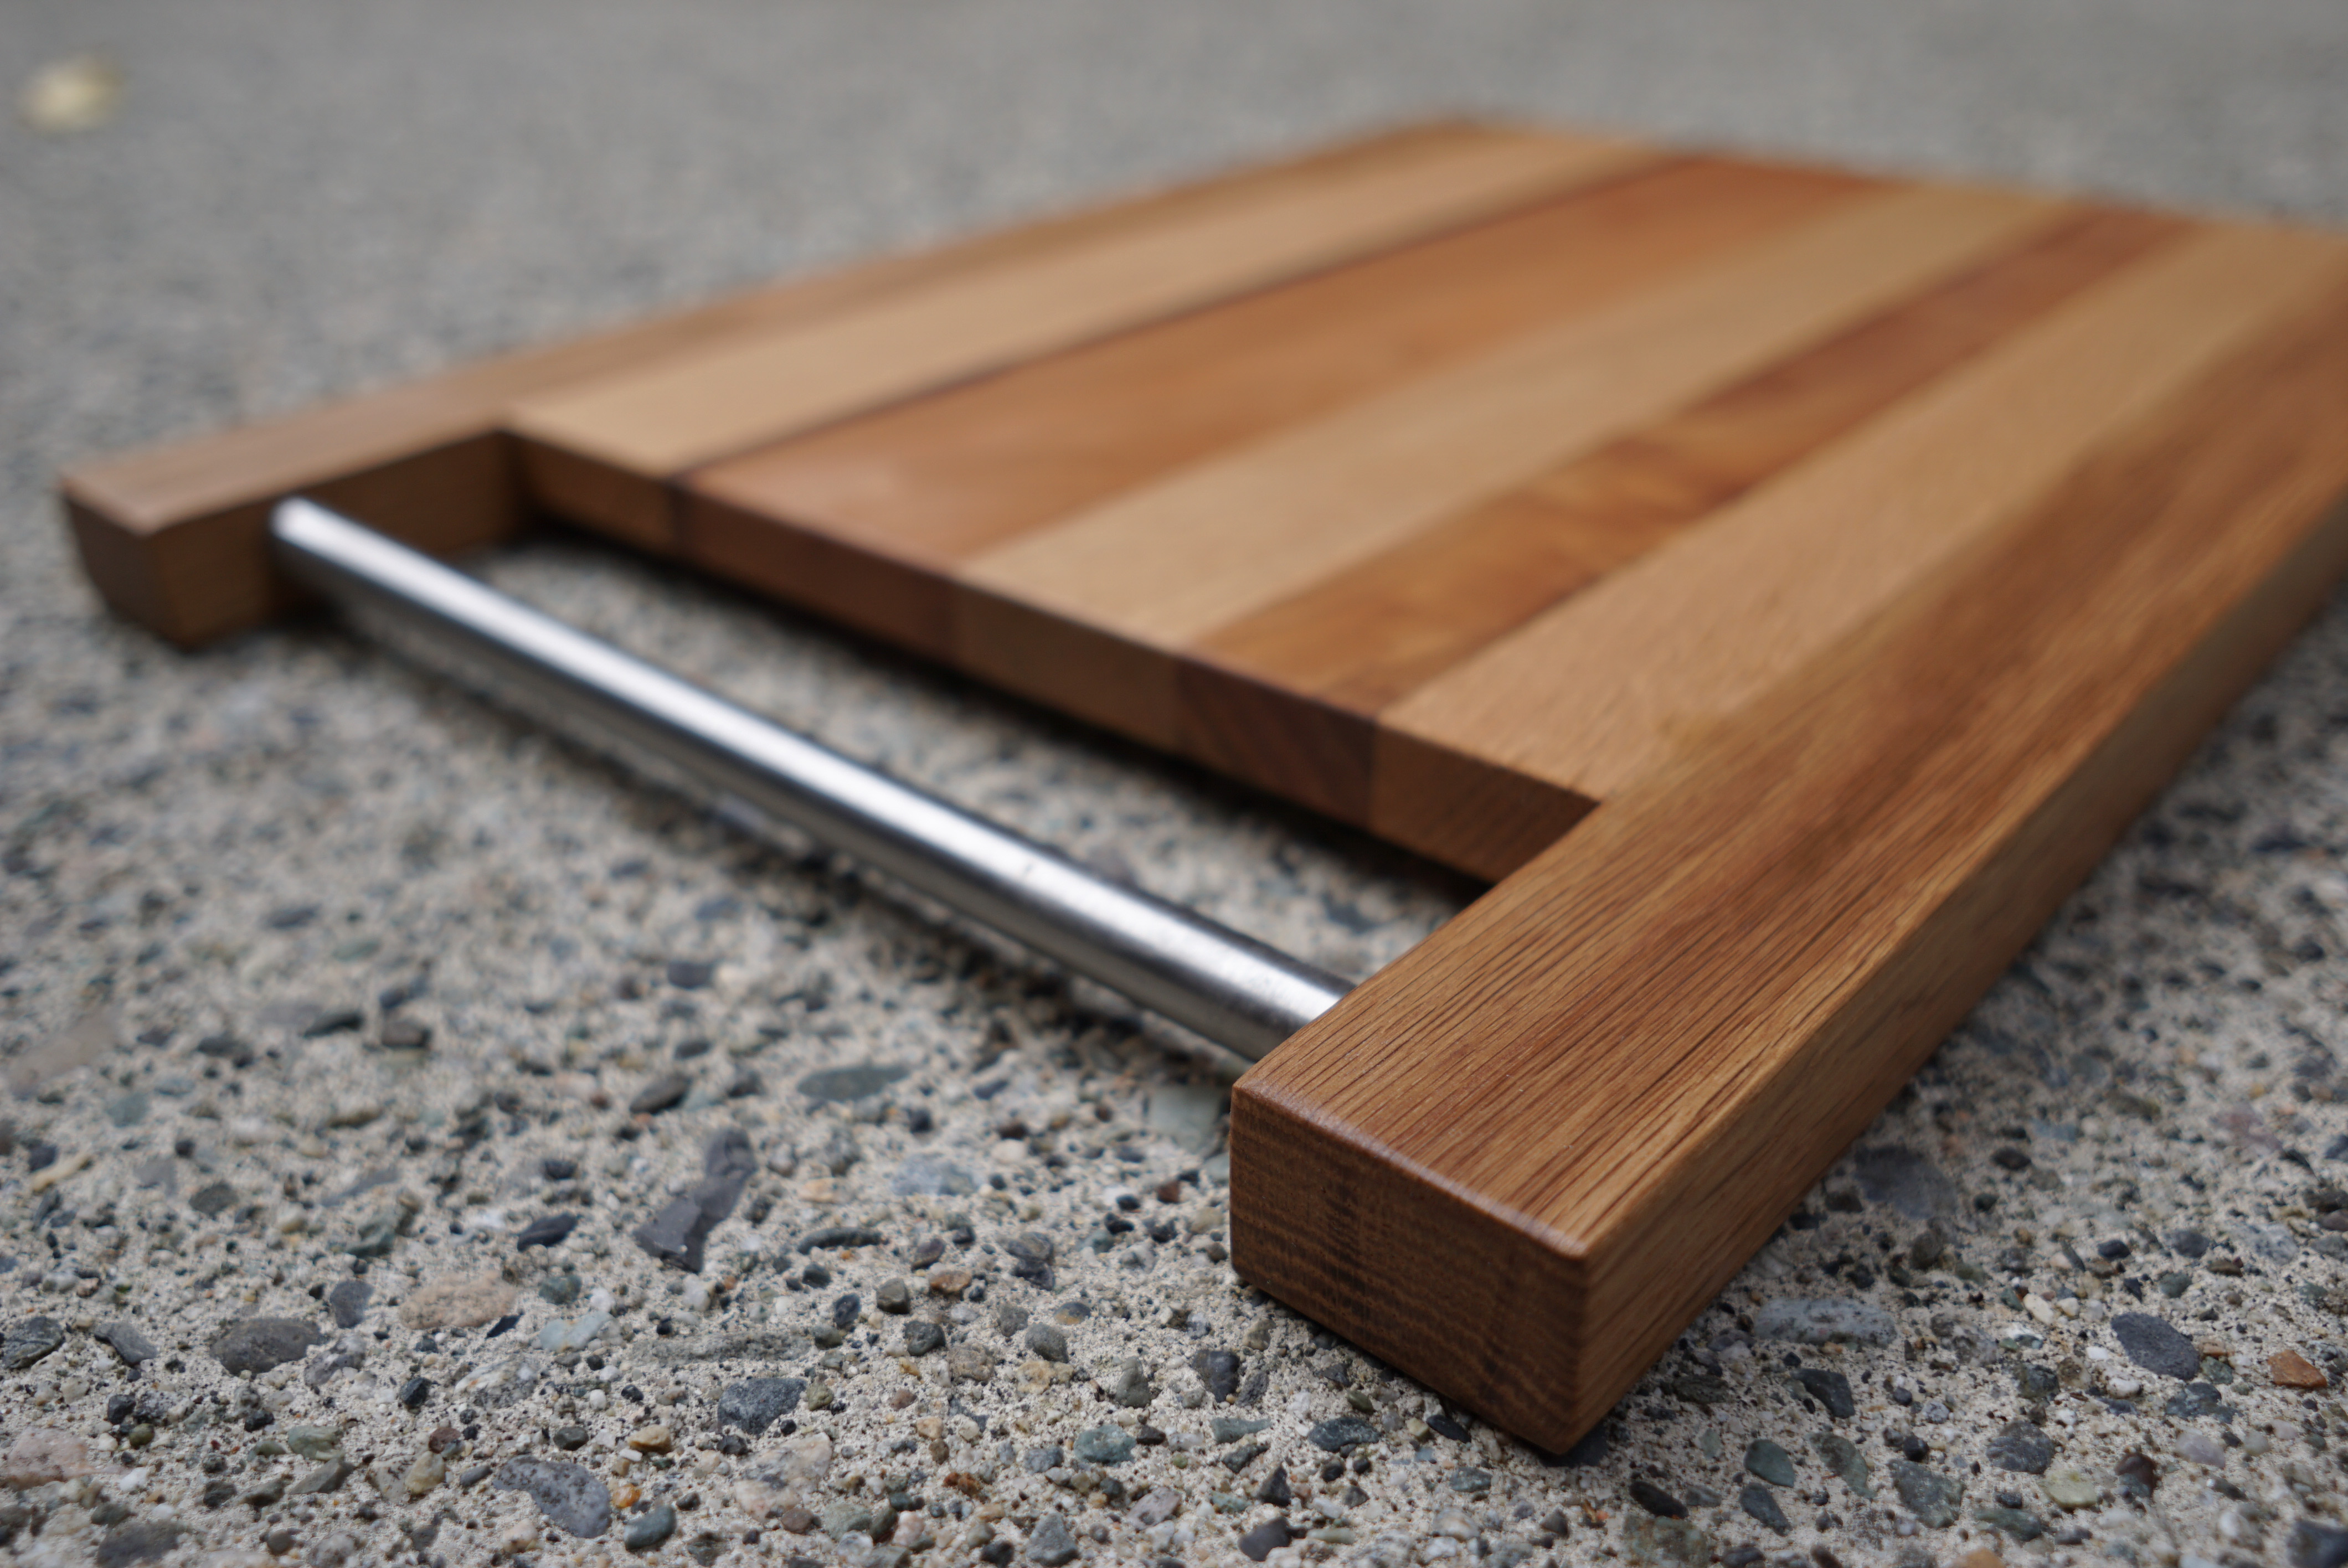 Custom Wood Charcuterie Board